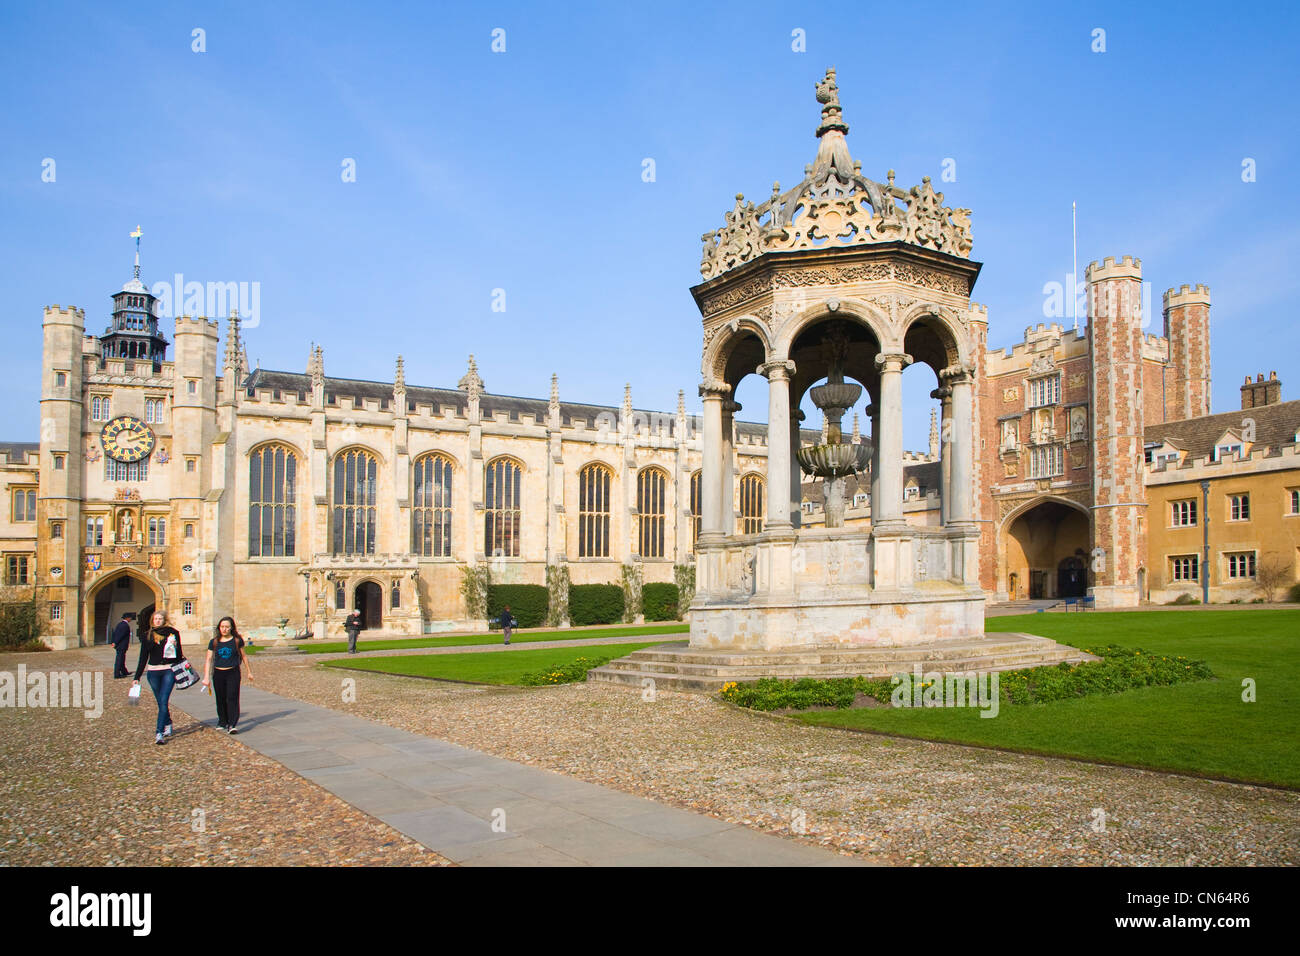 The Great Court, Chapel, fountain and Gatehouse Trinity College Cambridge University England - Stock Image